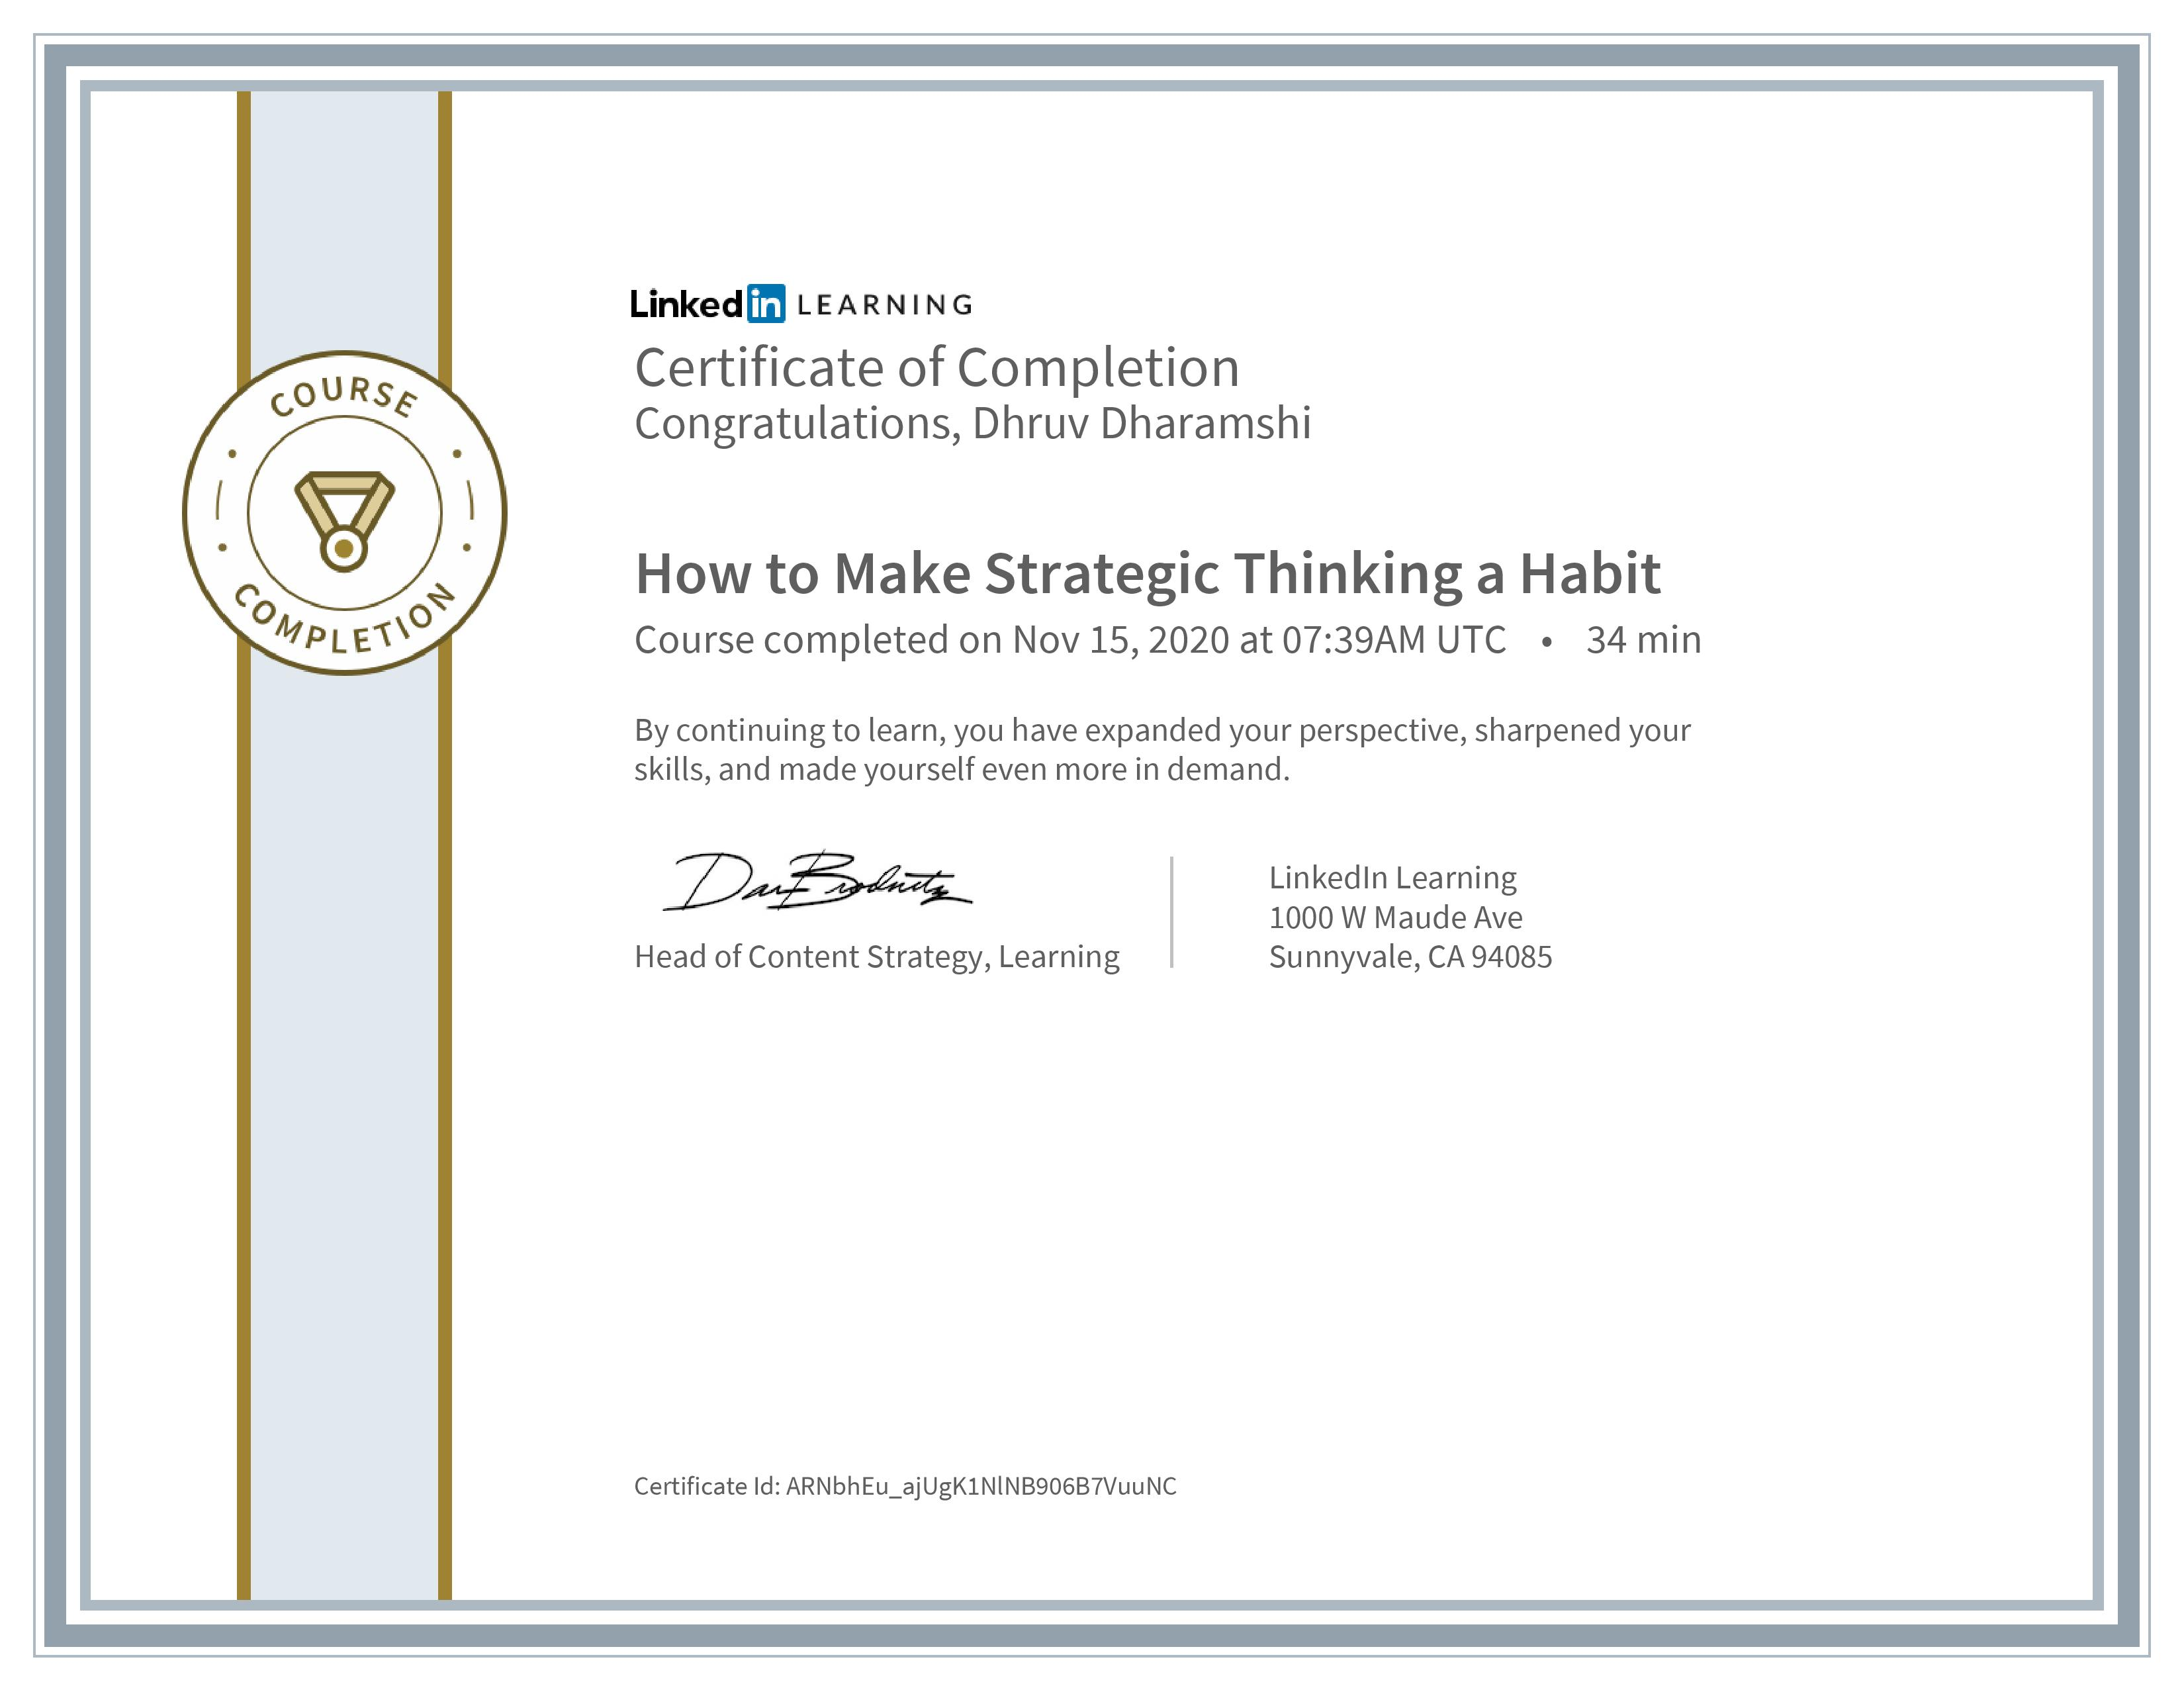 How to Make Strategic Thinking a Habit